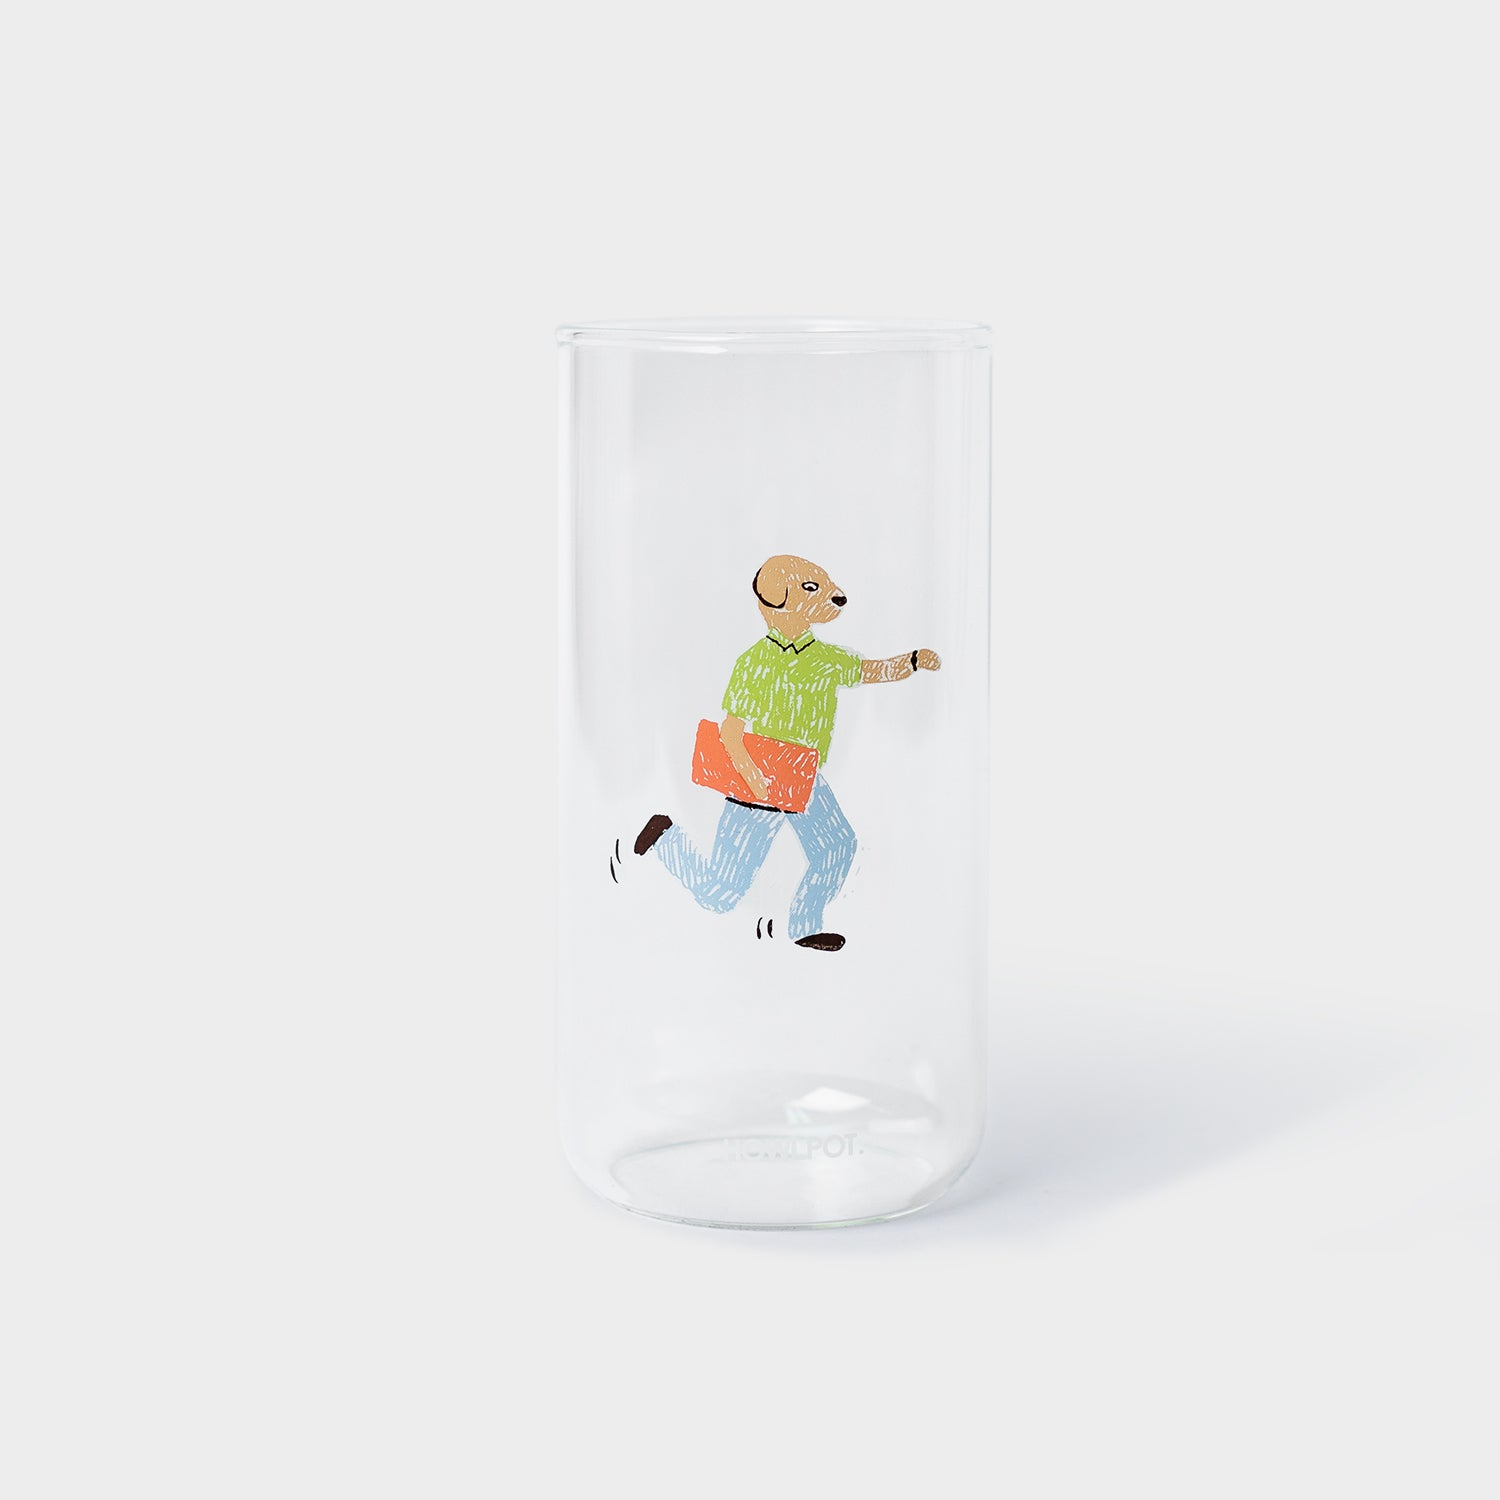 Howlpot LIFE Glass A(Fetch me if you can)